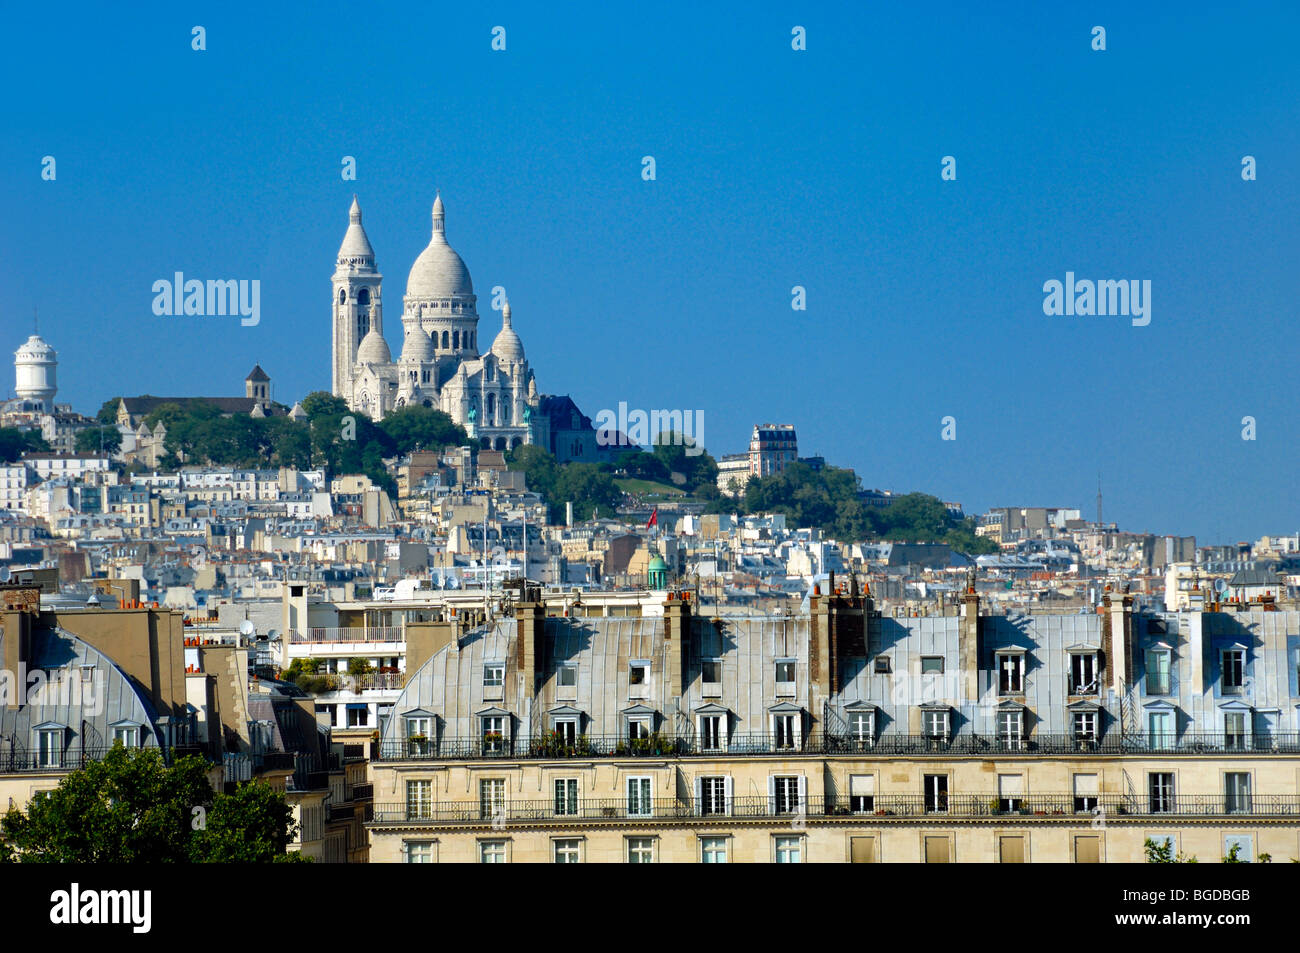 View of the Sacré Coeur Basilica or Church